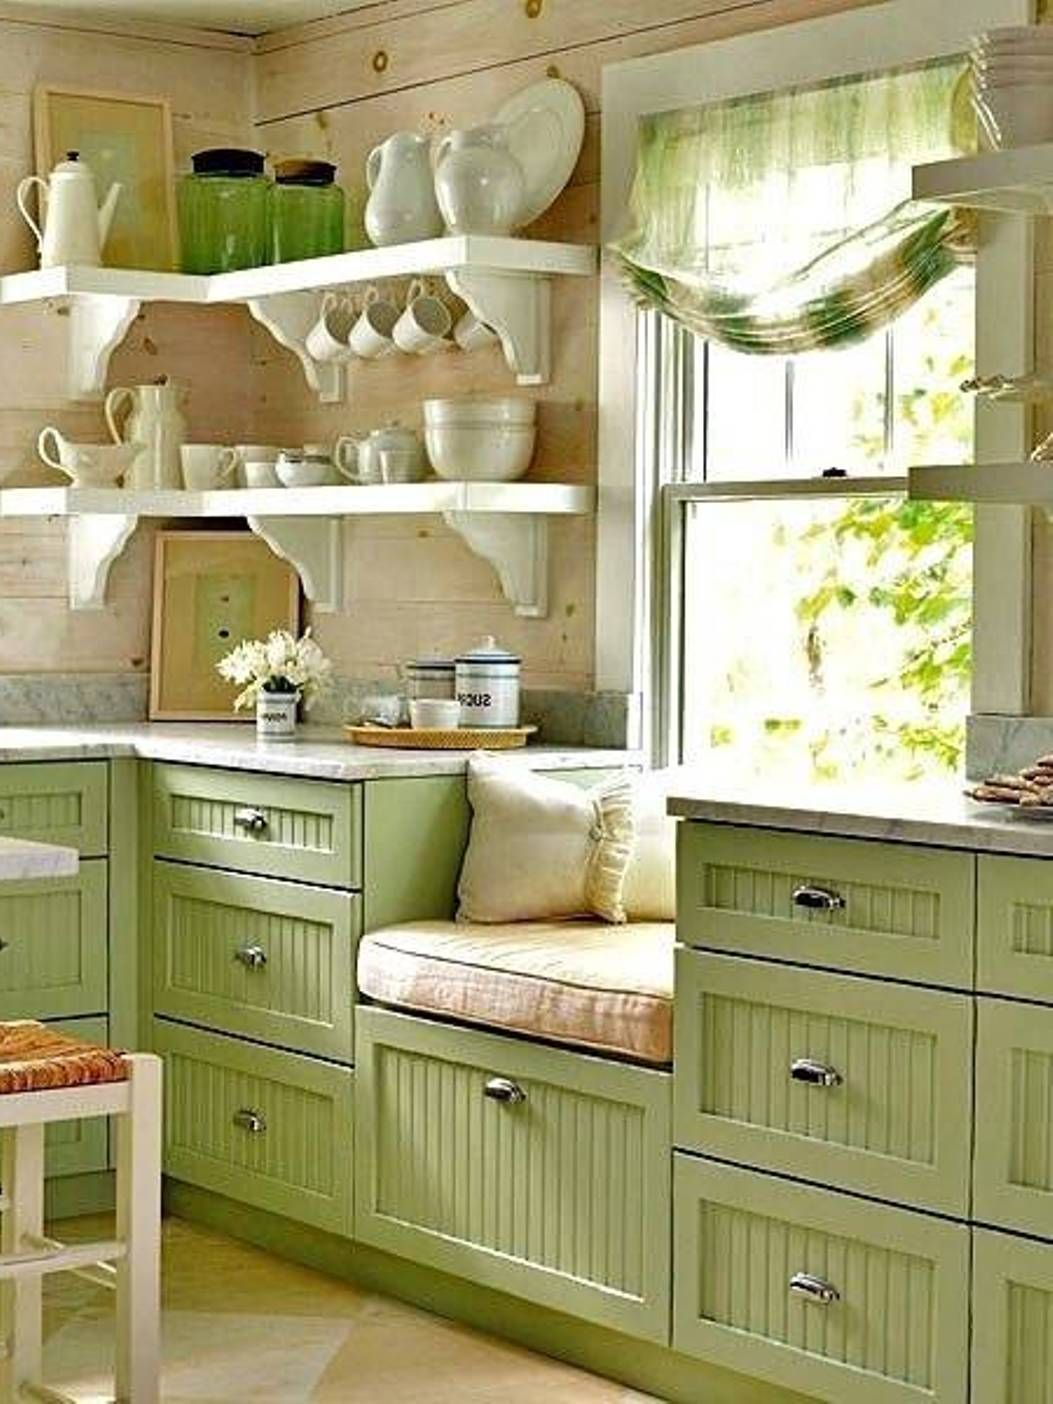 Pin By Xayvar On Design Inspiration Cottage Kitchen Design Kitchen Design Home Decor Kitchen